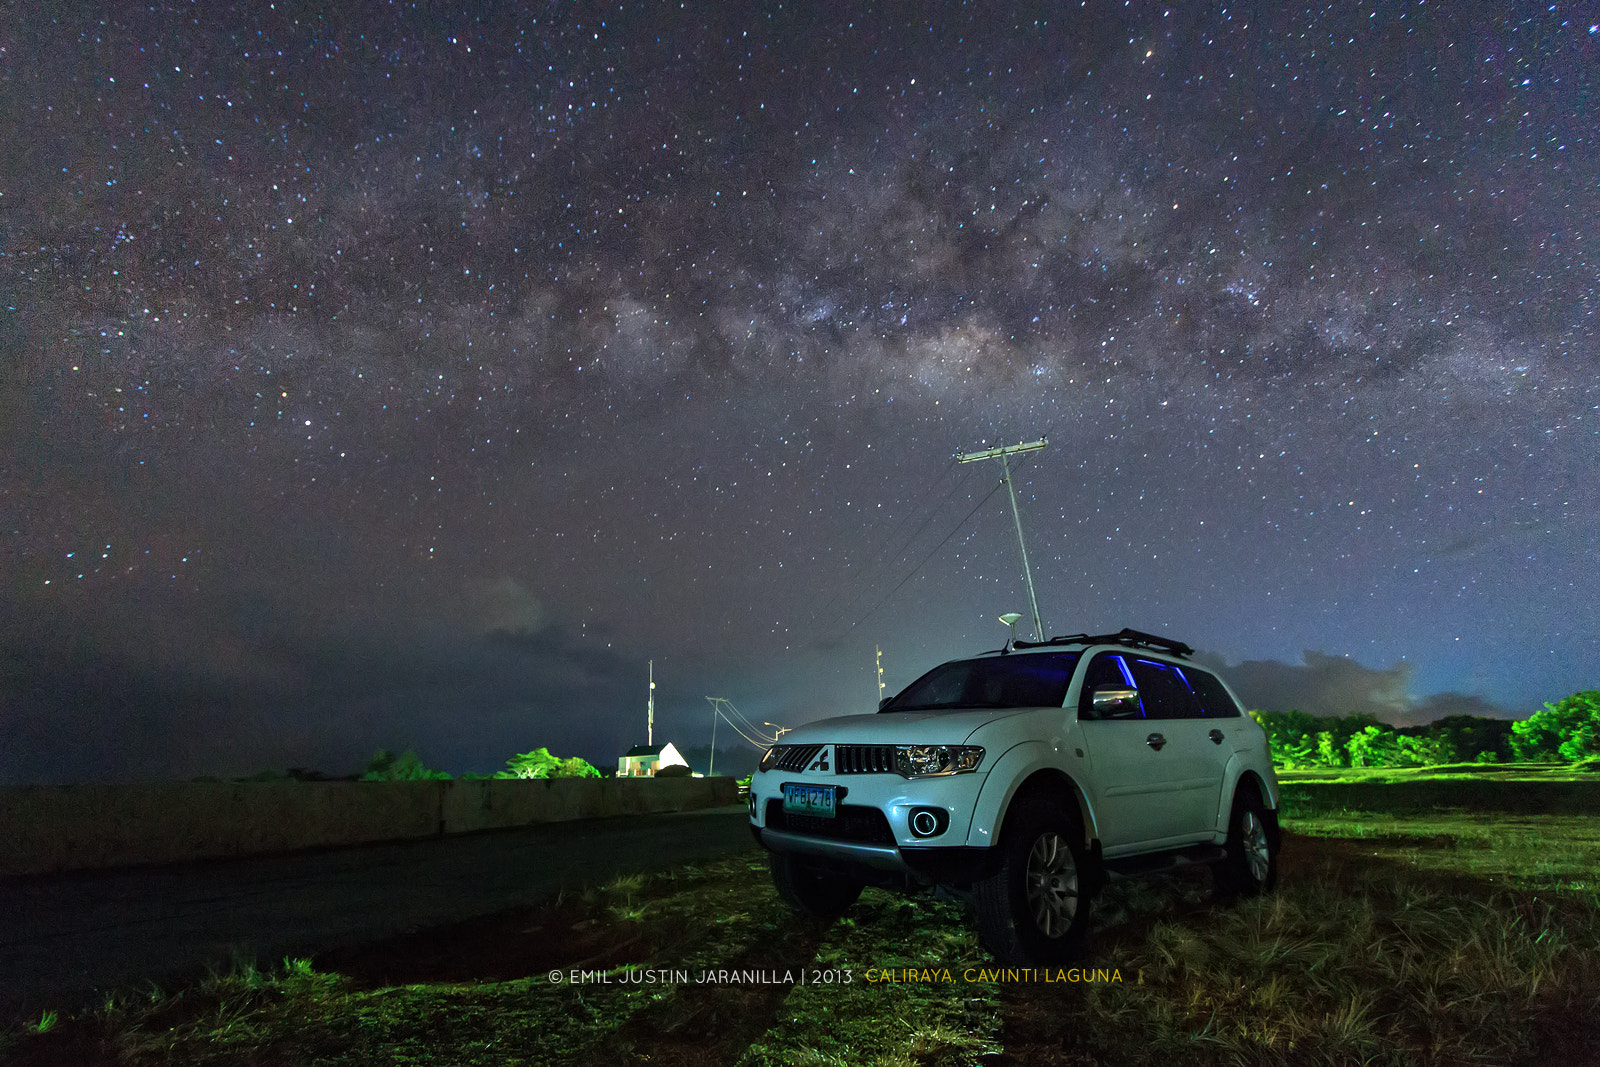 Photograph SUV and the Milky Way by Emil Justin Jaranilla on 500px